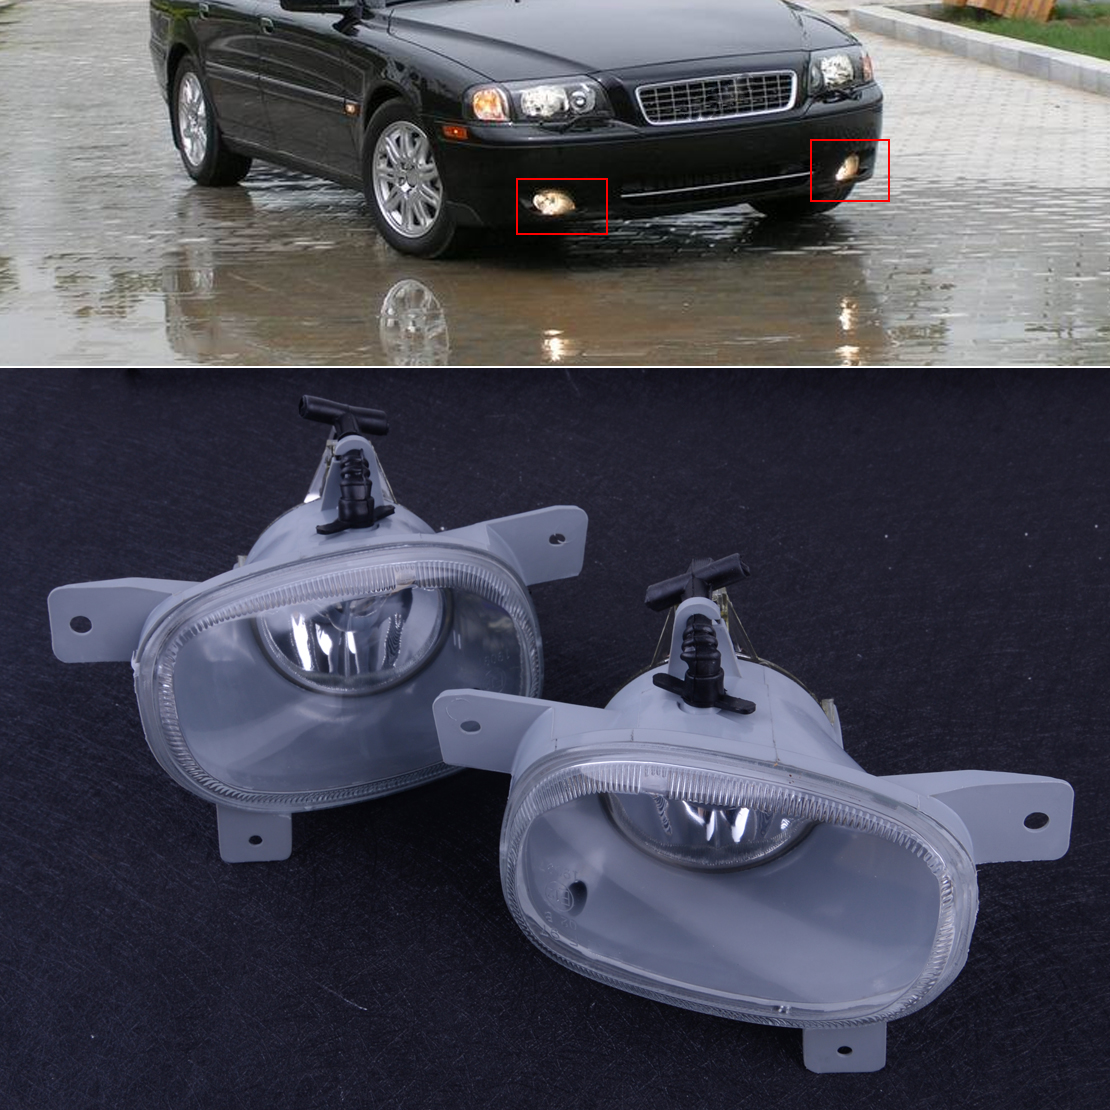 CITALL 1Pair Left Right Front Bumper Fog Light Lamp 8620224 8620225 Fit For Volvo S80 1999 2000 2001 2002 2003 2004 2005 2006 motorcycle front light headlight head lamp for suzuki hayabusa gsxr1300 gsxr 1300 1999 2000 2001 2002 2003 2004 2005 2006 2007